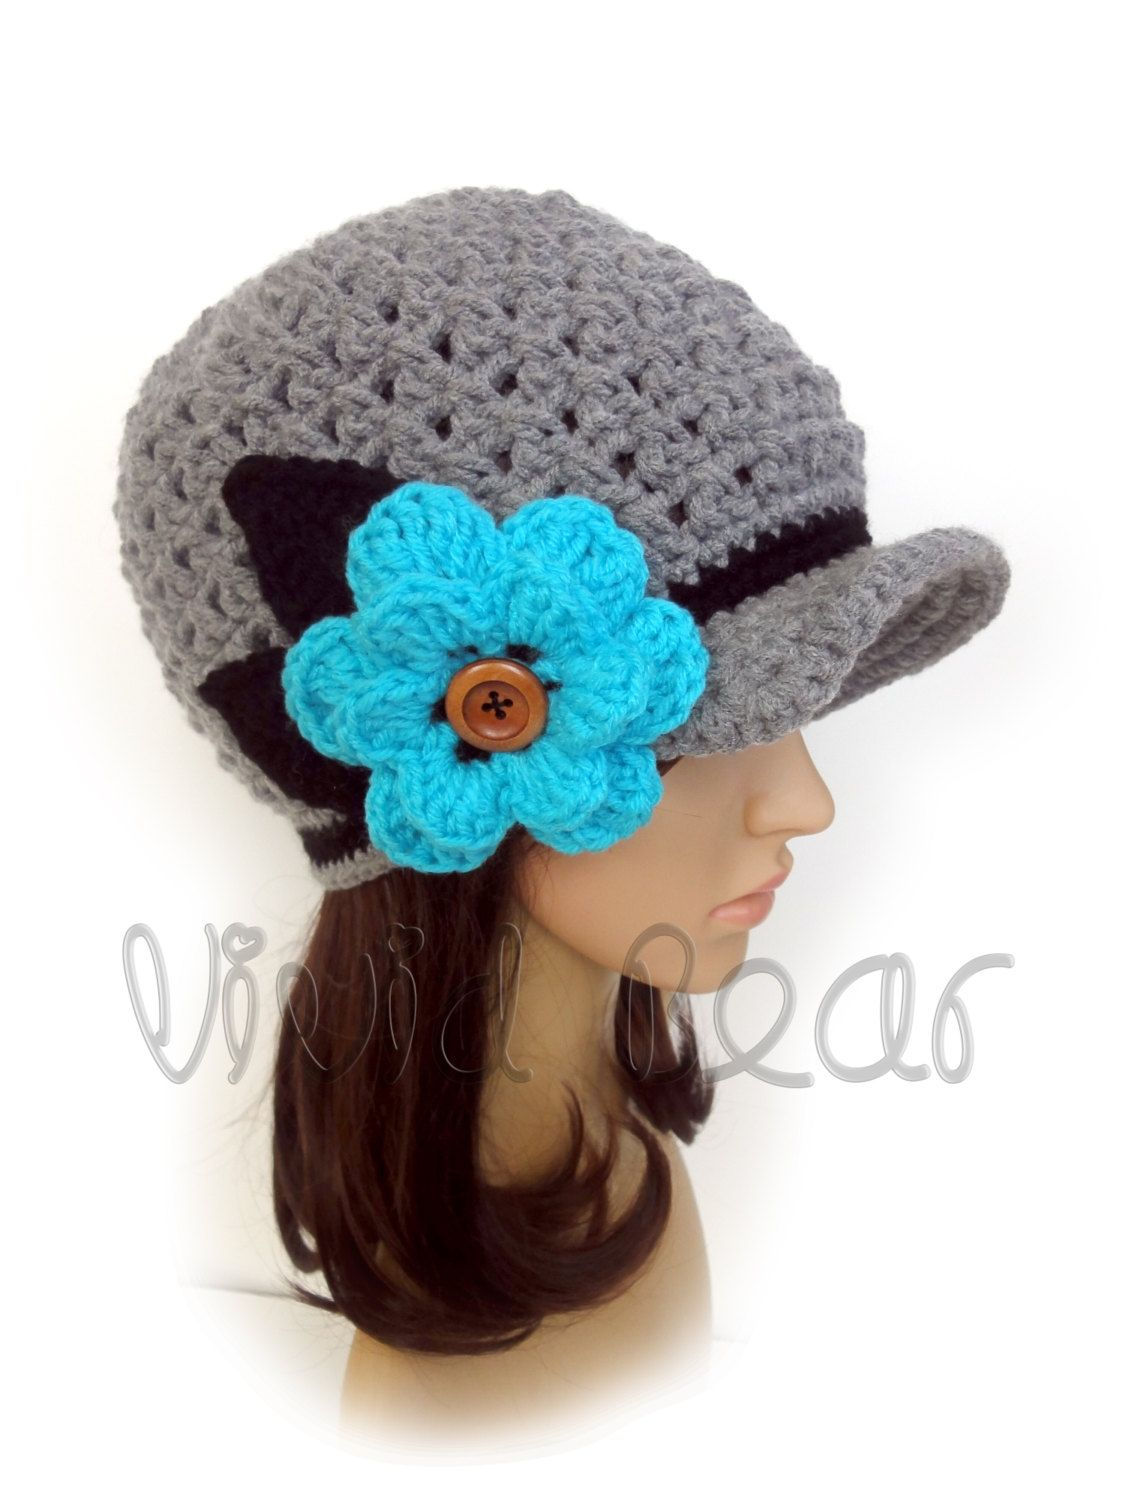 Crochet Newsboy Cap. 44 colors. Flower with wooden button and leaves. Beanie. Women's Hat. Warm Winter Accessory. by VividBear on Etsy